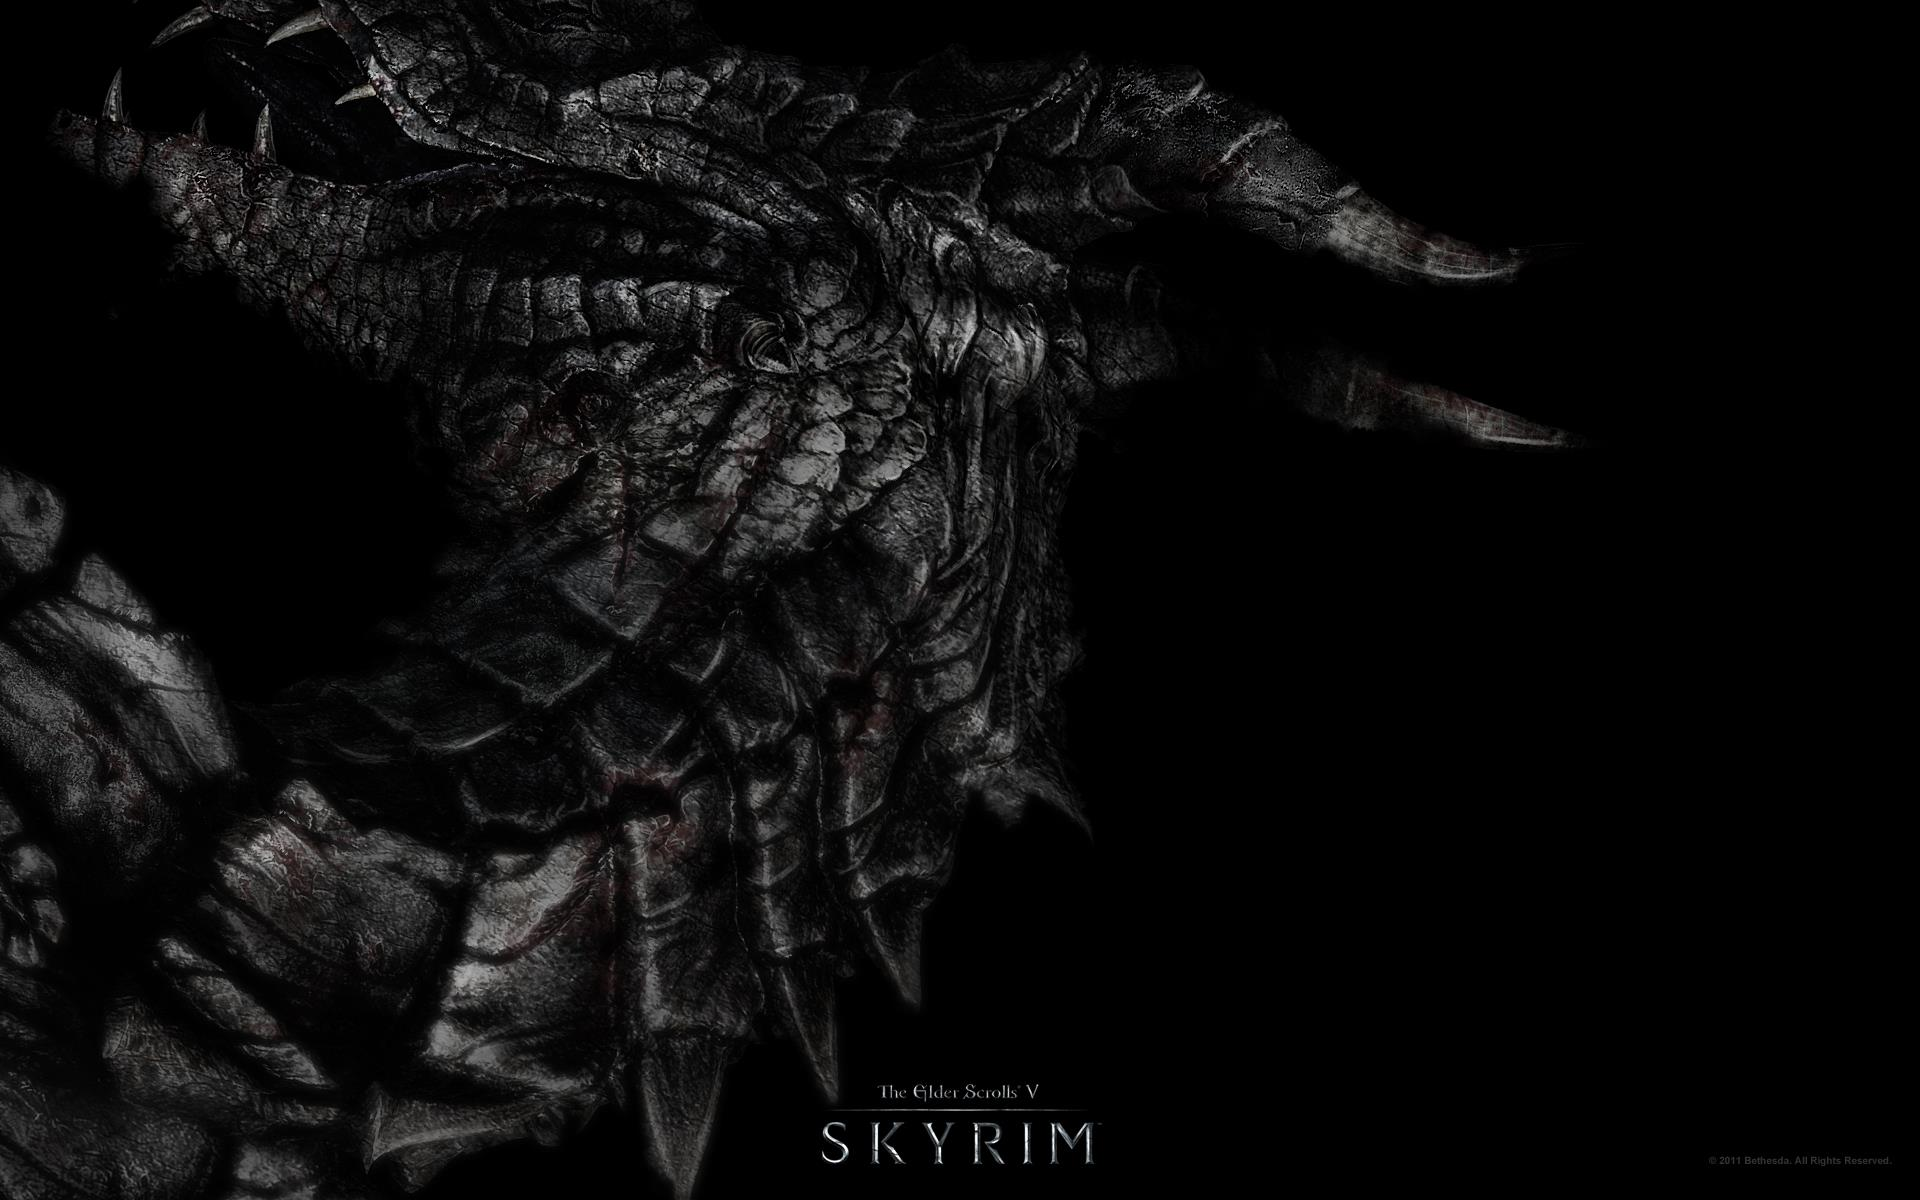 The Elder Scrolls V: Skyrim wallpaper dragon head